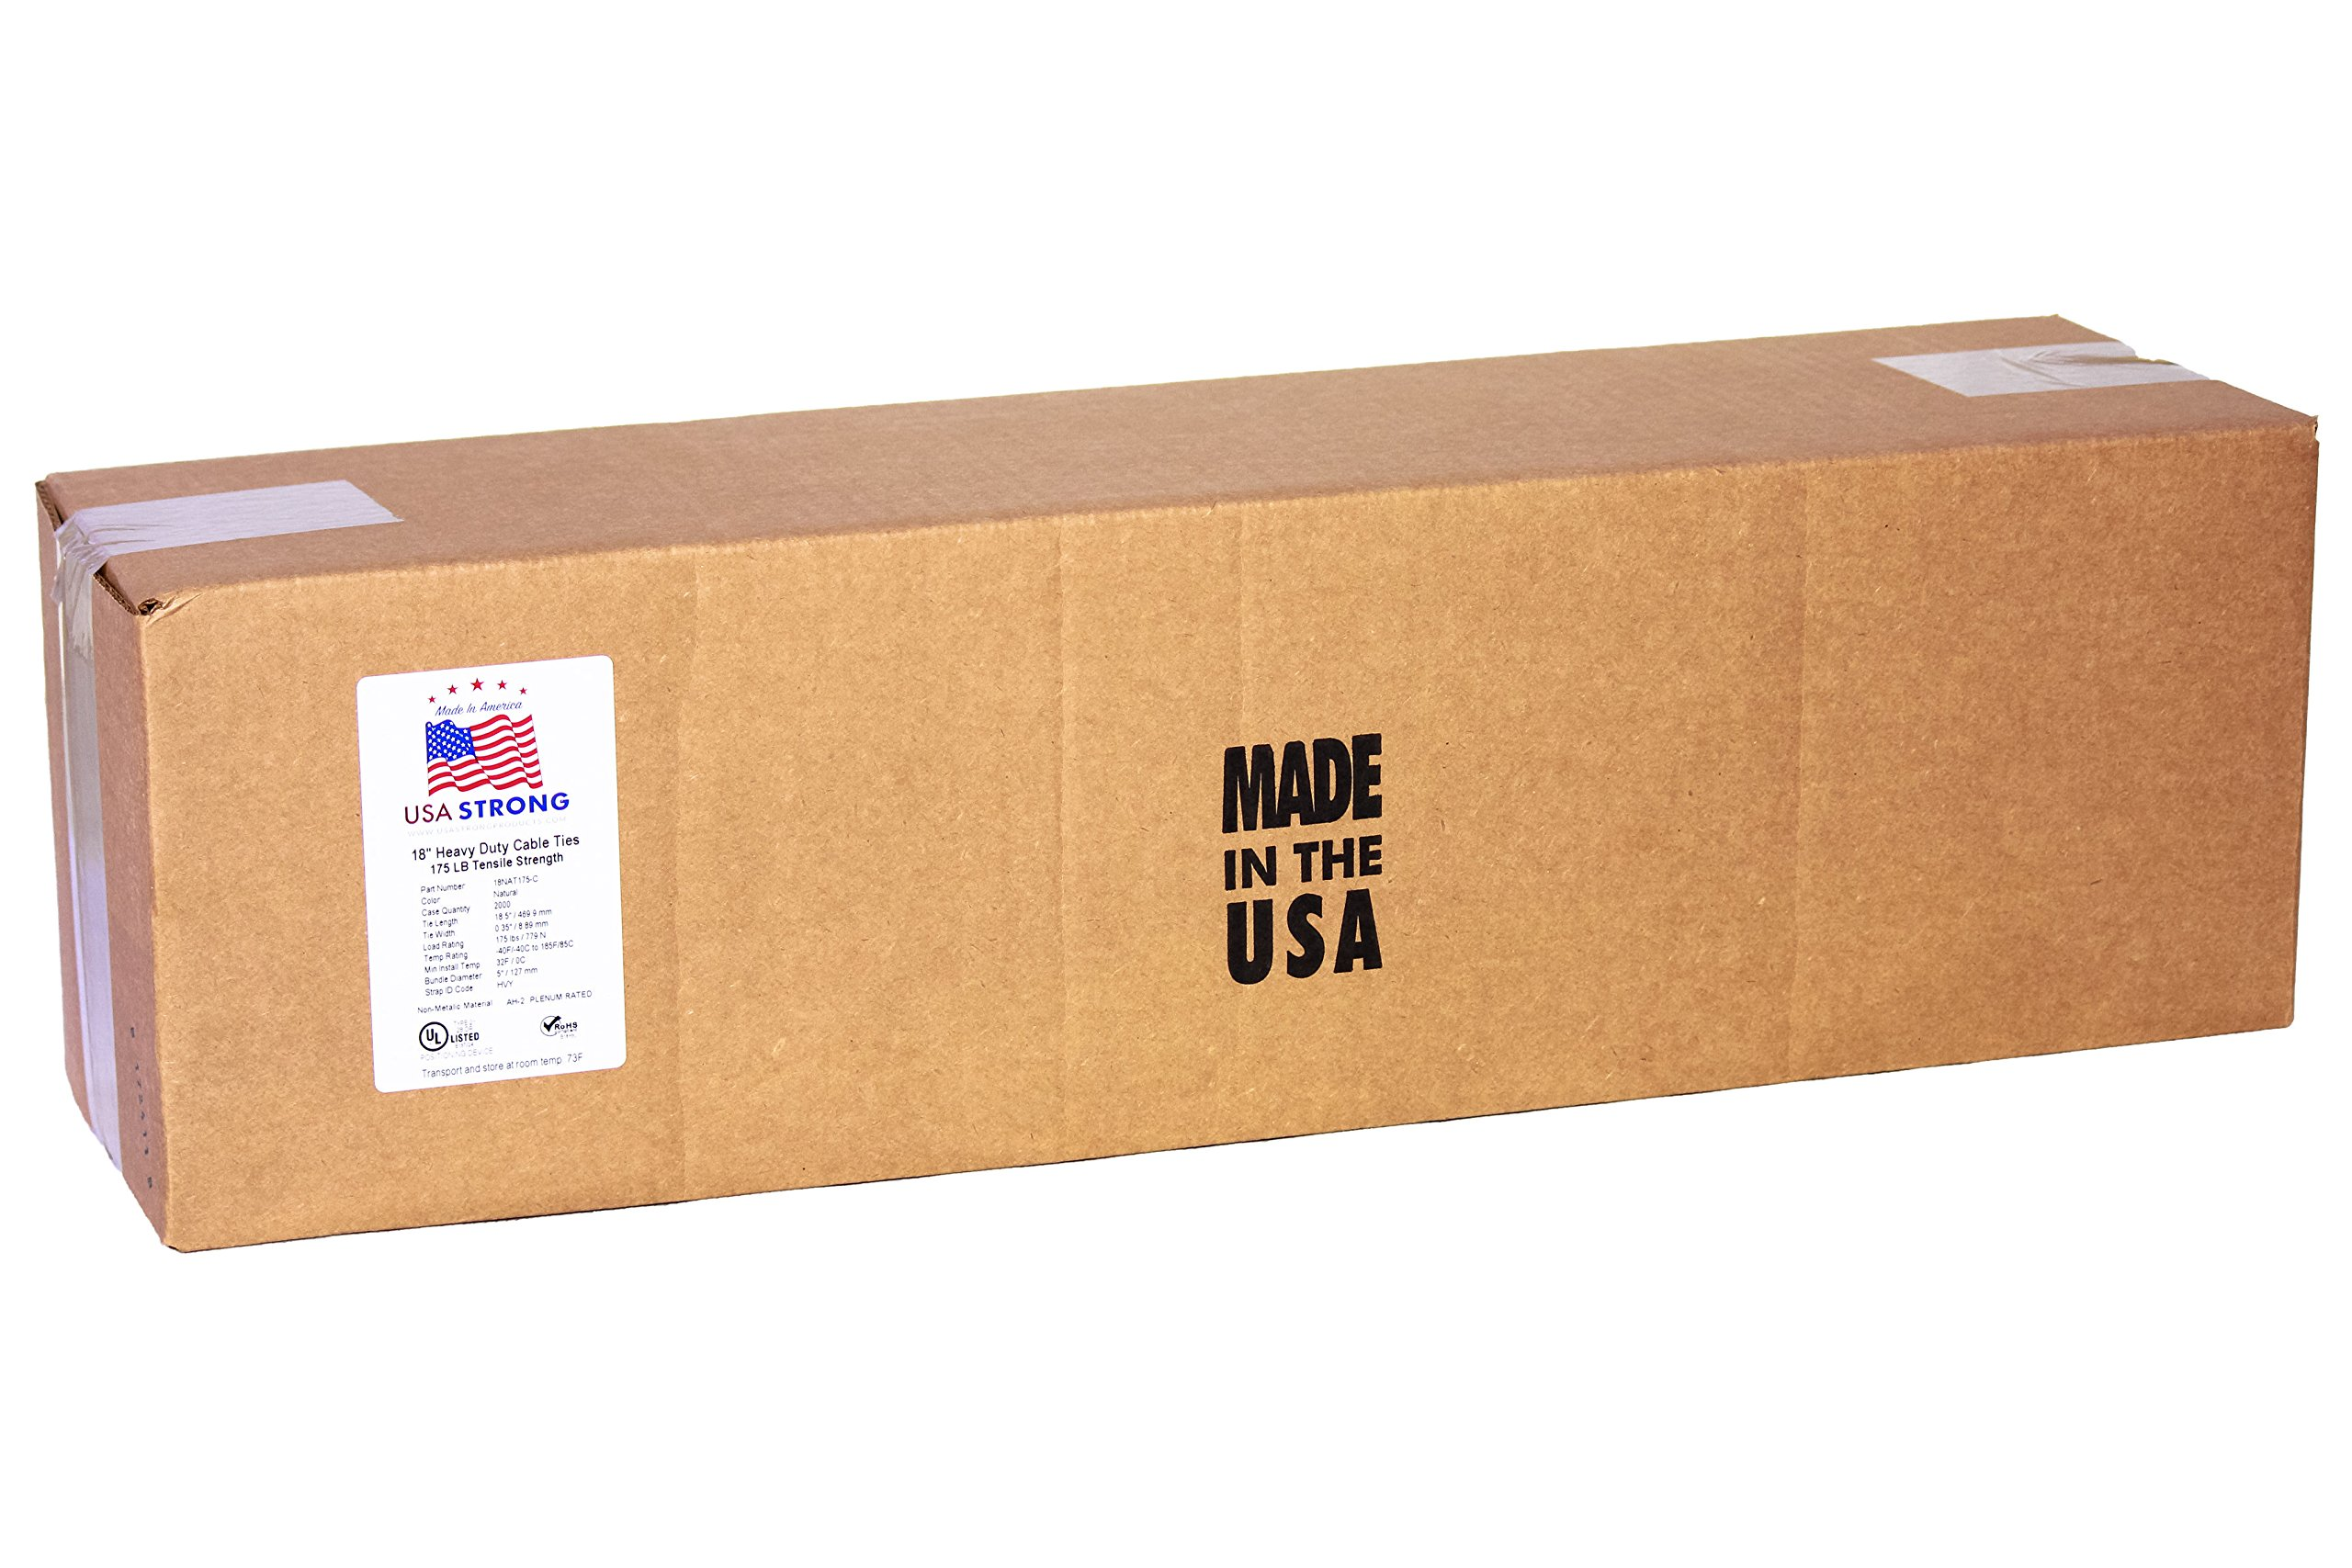 Heavy Duty Cable Ties Bulk Wholesale Prices. 18 Inch Natural White Premium Industrial Grade Shipped FLAT. Large Pliable and Durable Zips | 20 Packs of 50 | 1000 Cable Ties | Made in The USA